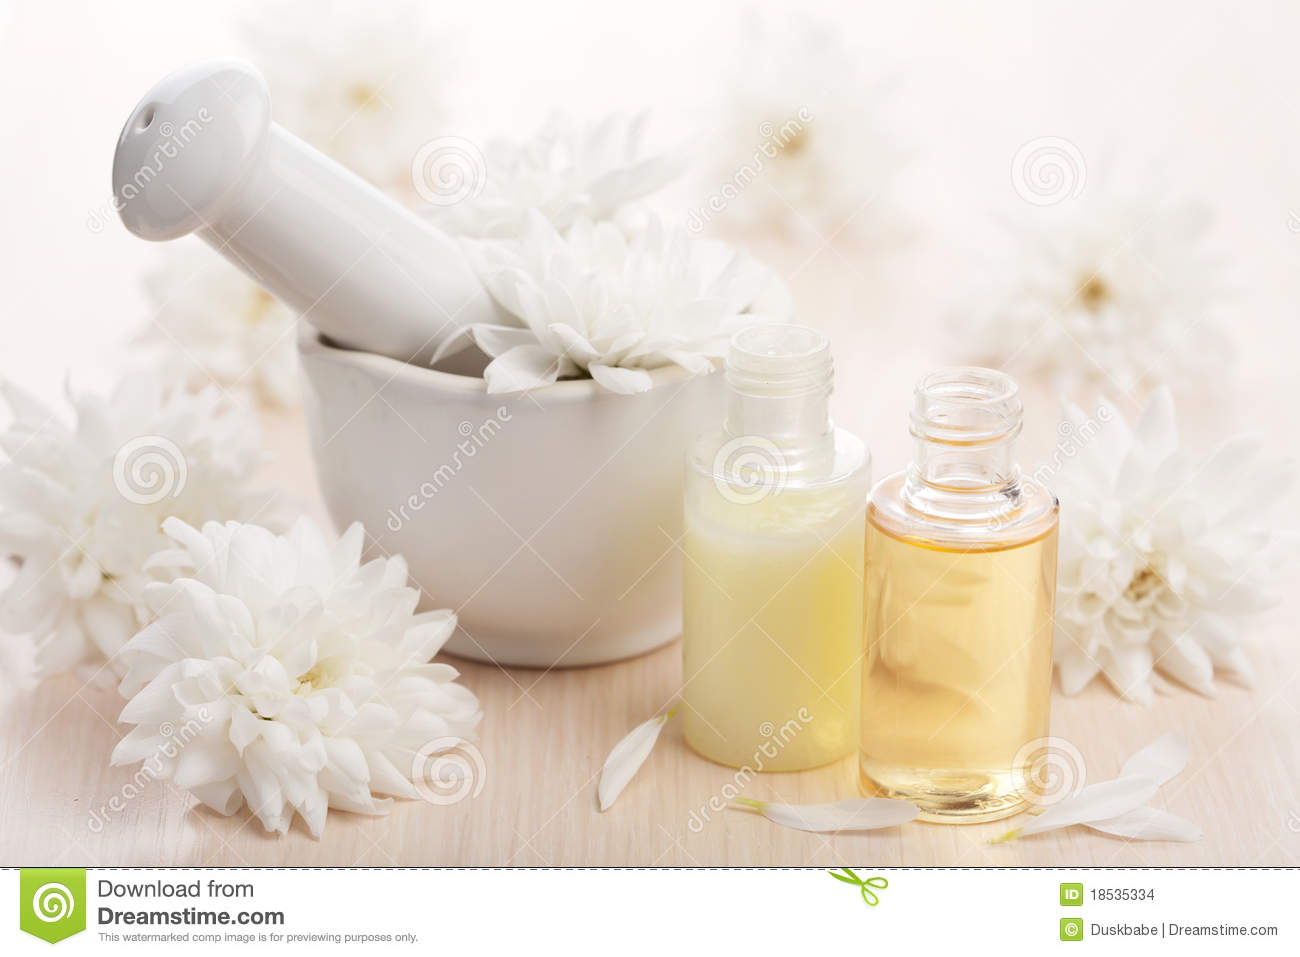 Flower Essential Oil And Mortar Stock Image